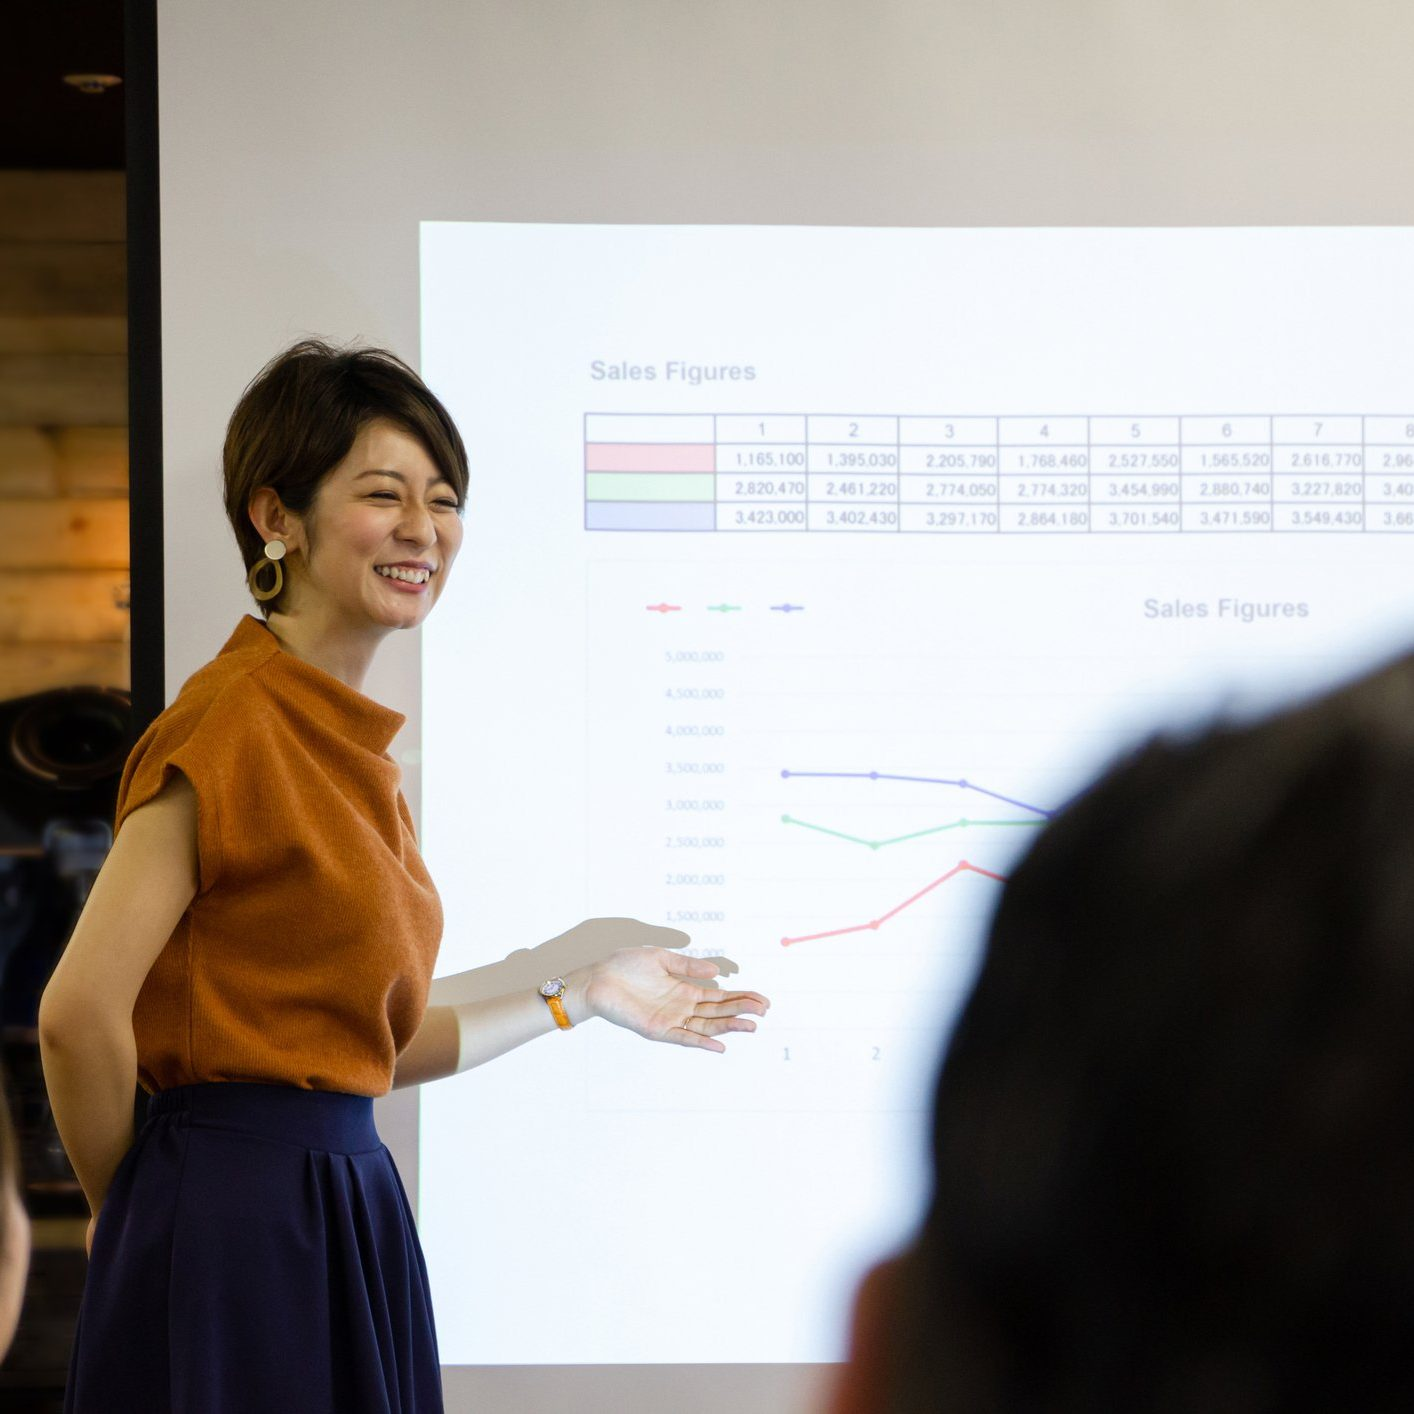 Japanese businesswoman standing by projection screen, giving presentation